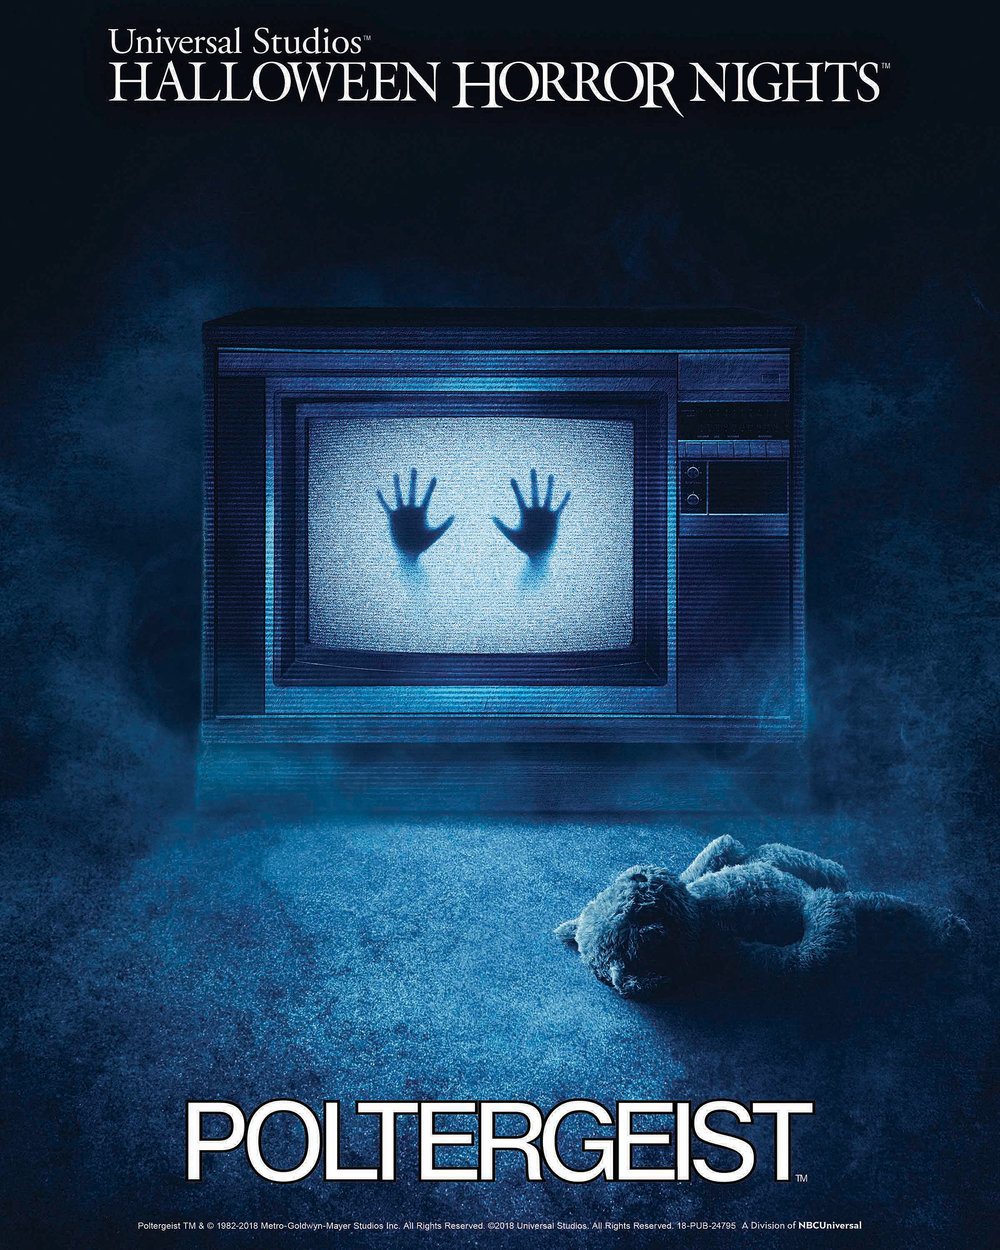 poltergeist-is-coming-to-halloween-horror-nights-at-universal-studios3